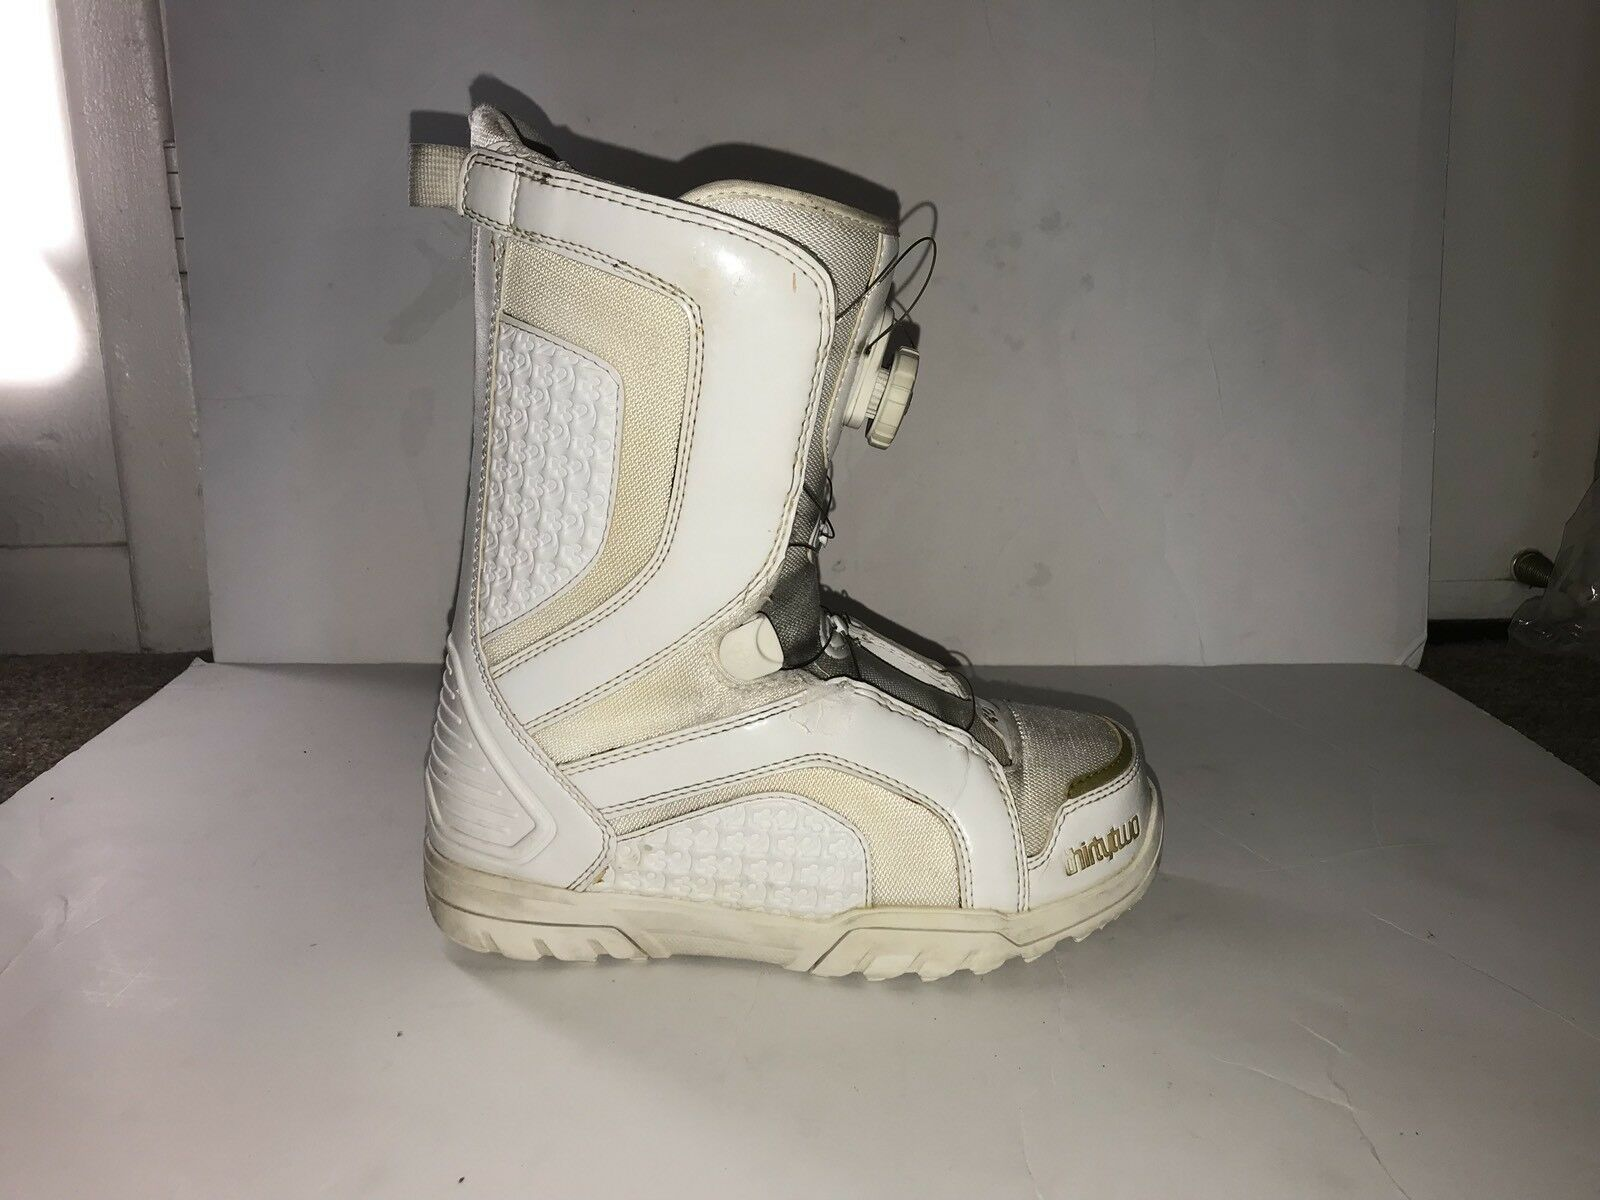 Thirty two stw boa  women's 8.5 white snowboard boots  outlet